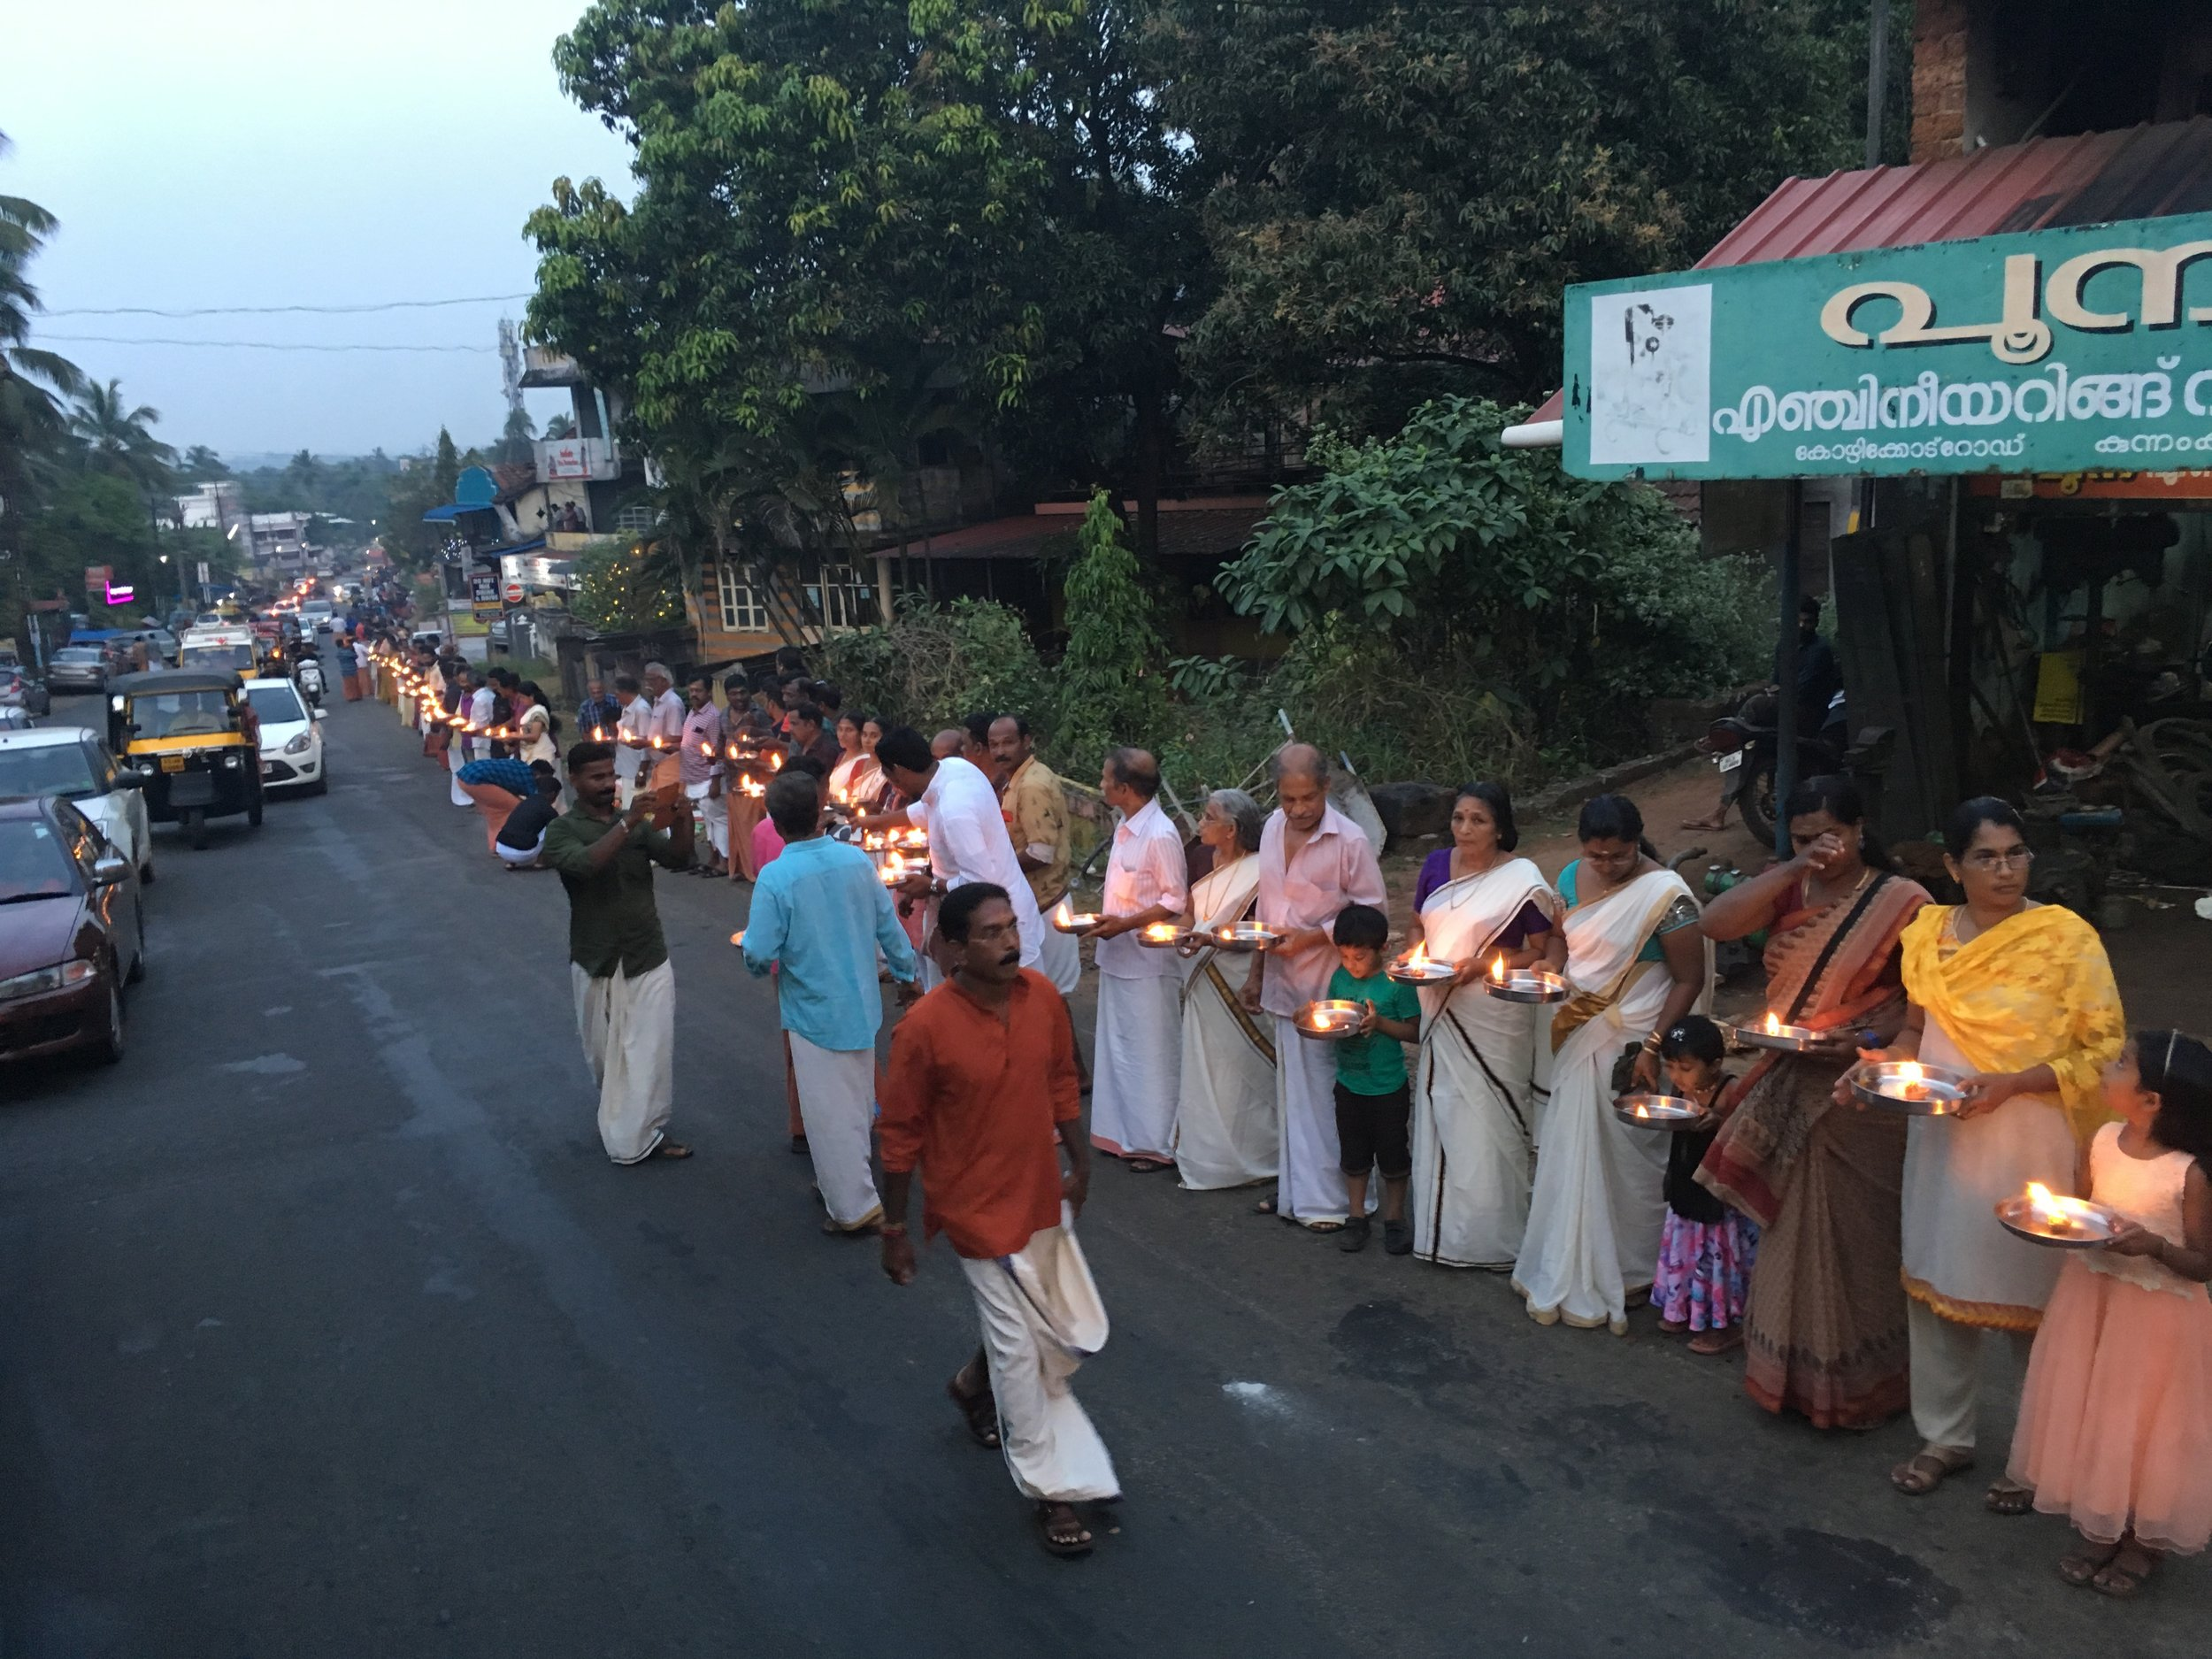 On Dec. 26, Ayyappa devotees in Kerala lit candles along a major state highway to protest a Supreme Court order that allows women to enter their god's shrine. Photo by Meagan Clark.